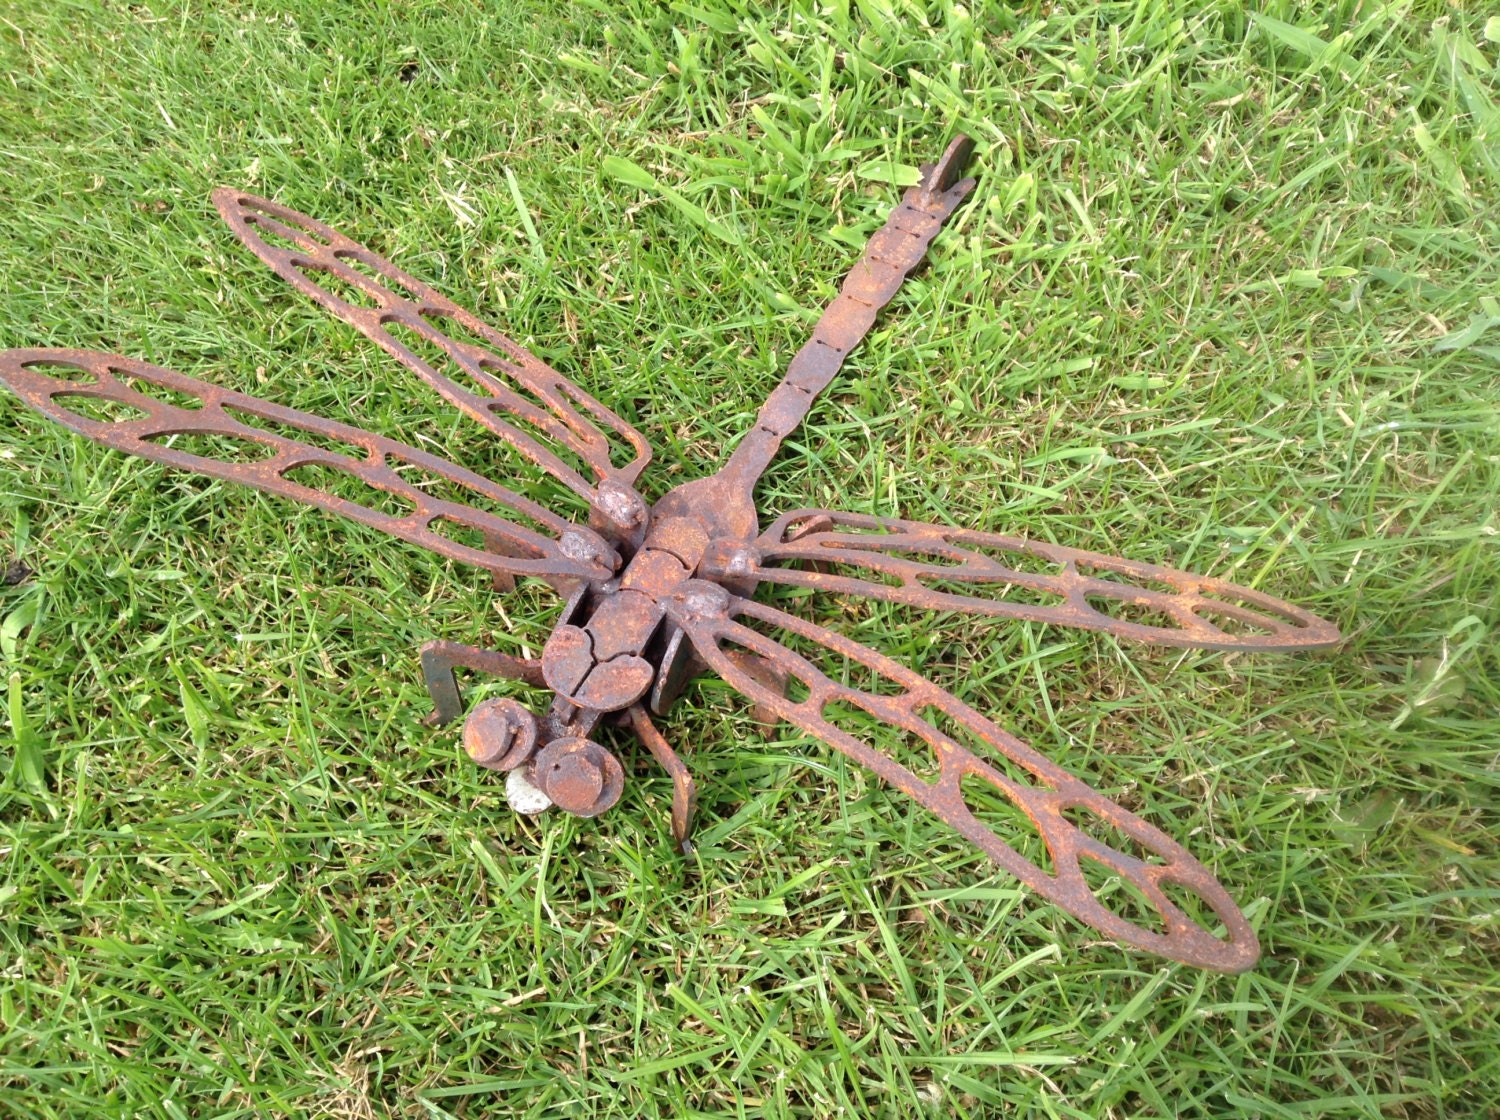 Rusty 3D Dragonfly / 3D Metal Dragonfly / Dragonfly gift /